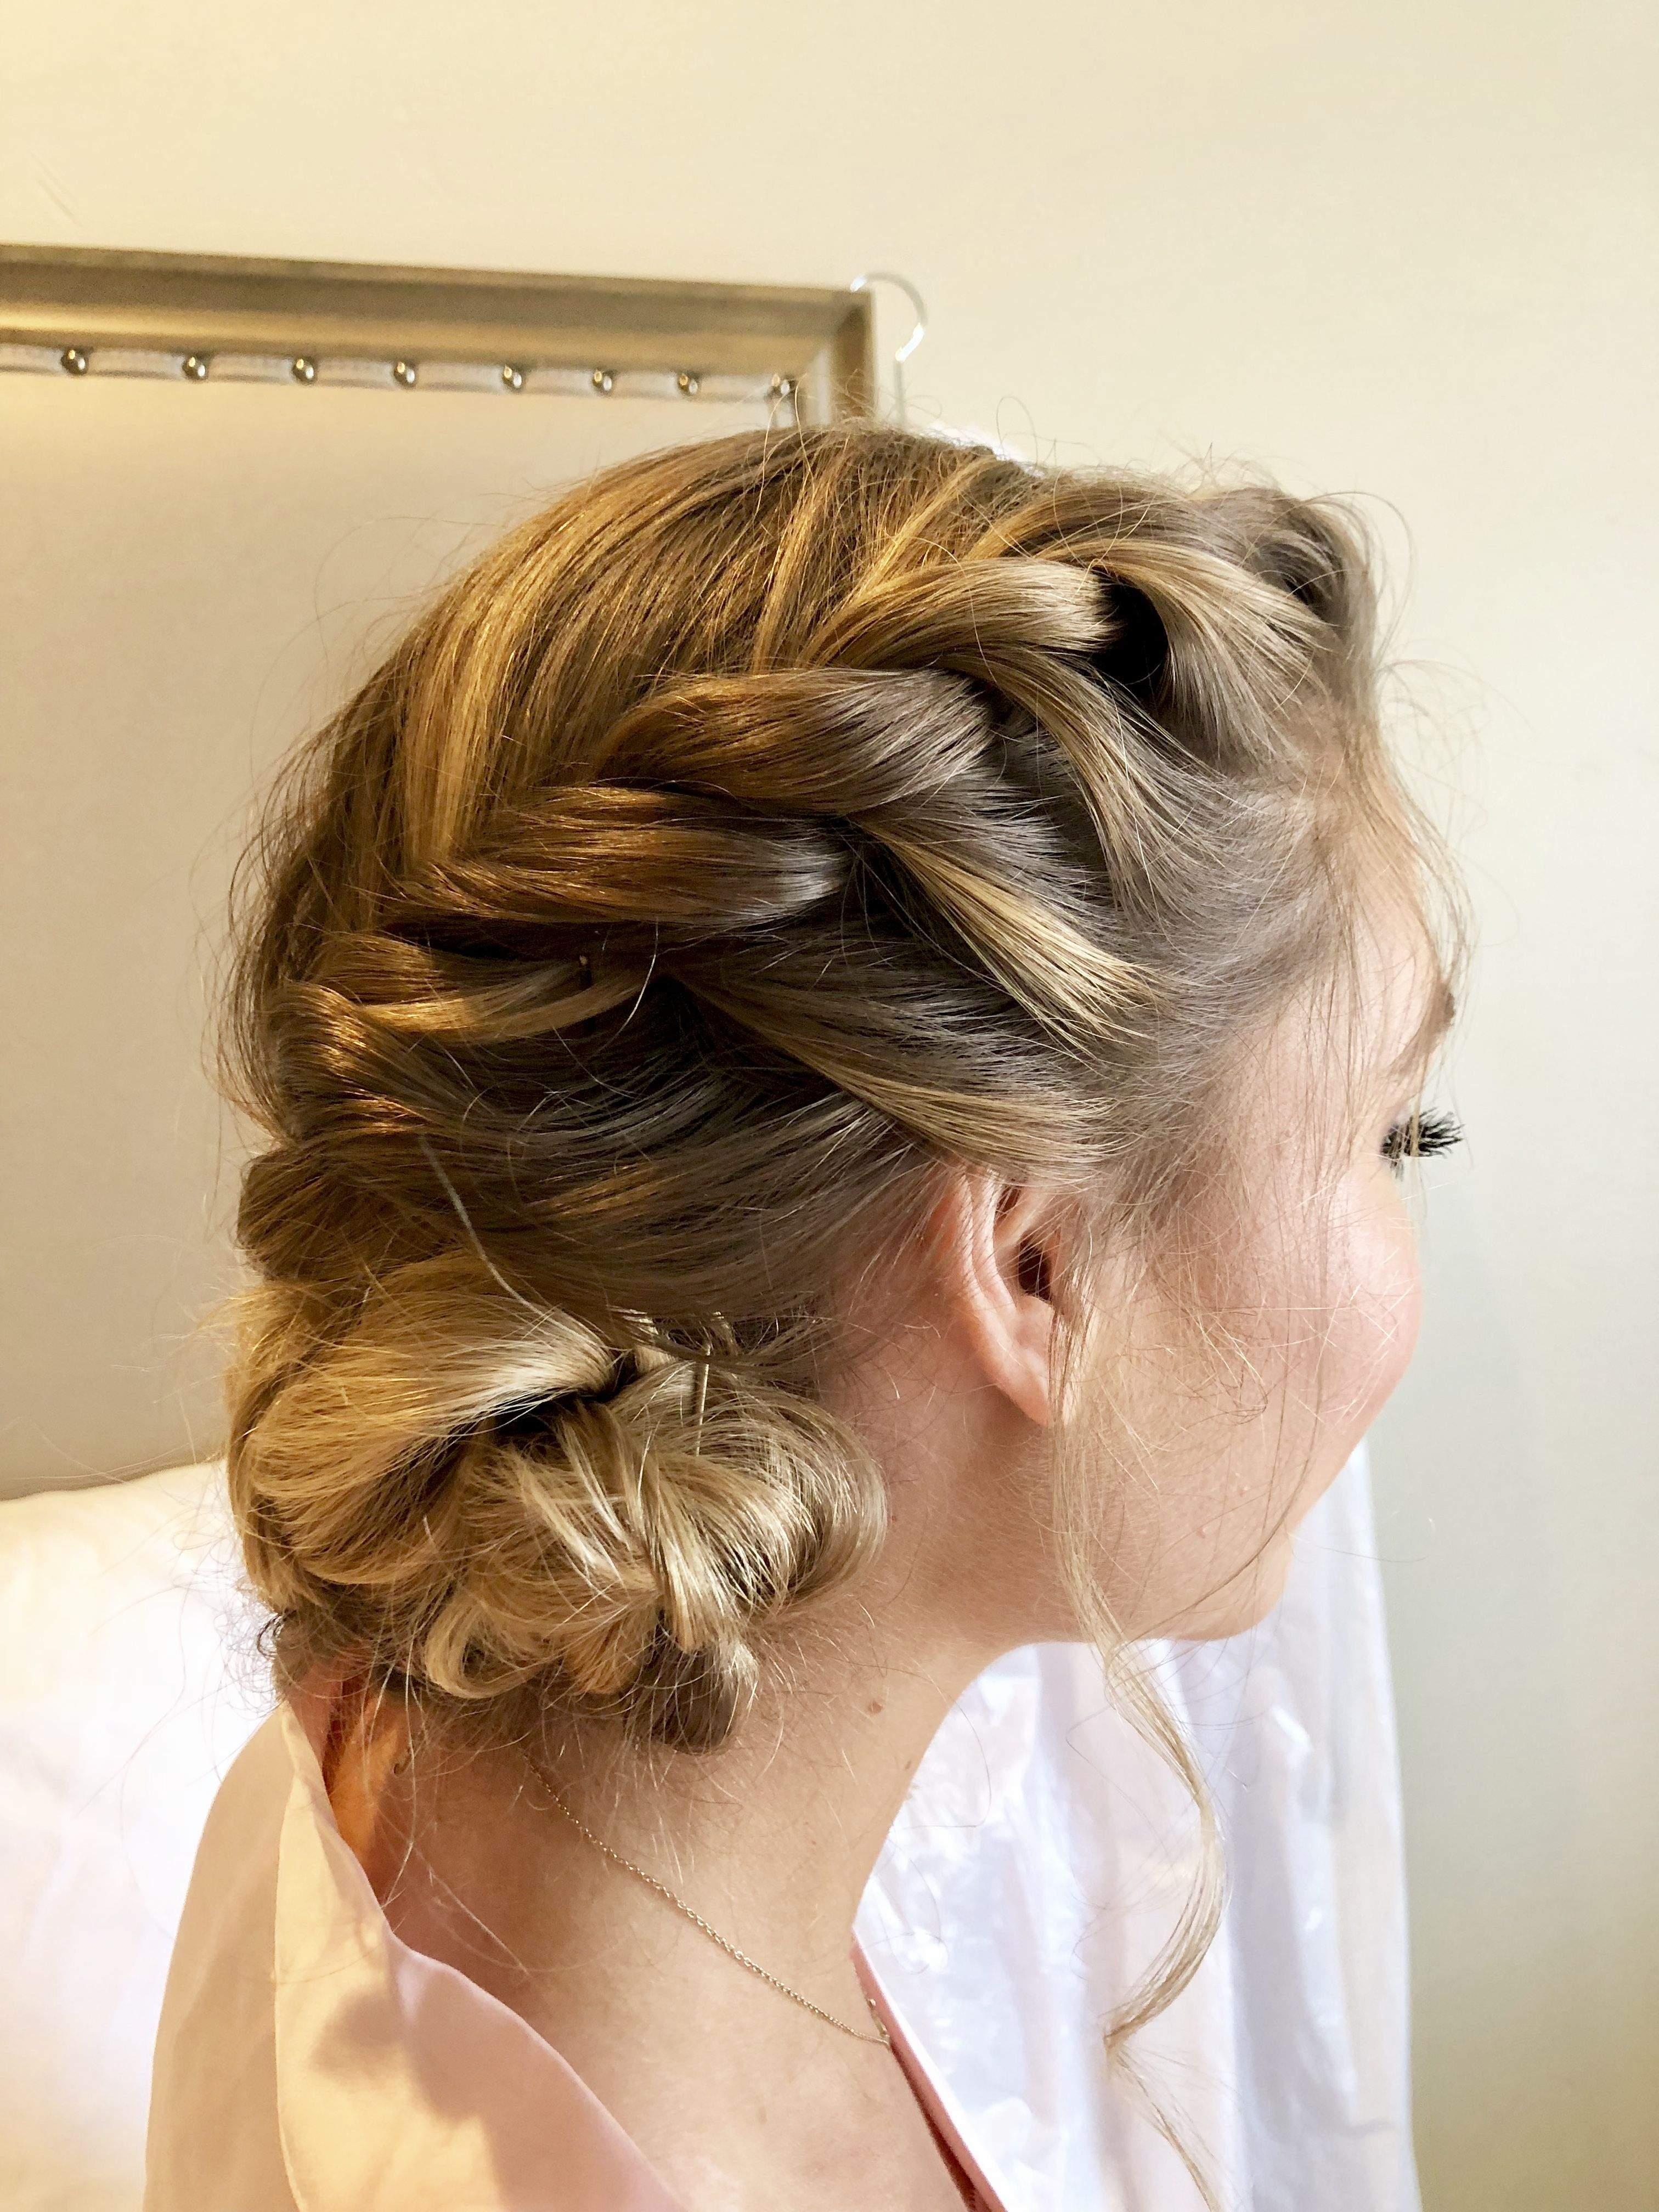 updo braided hairstyle for wedding | hair | braided